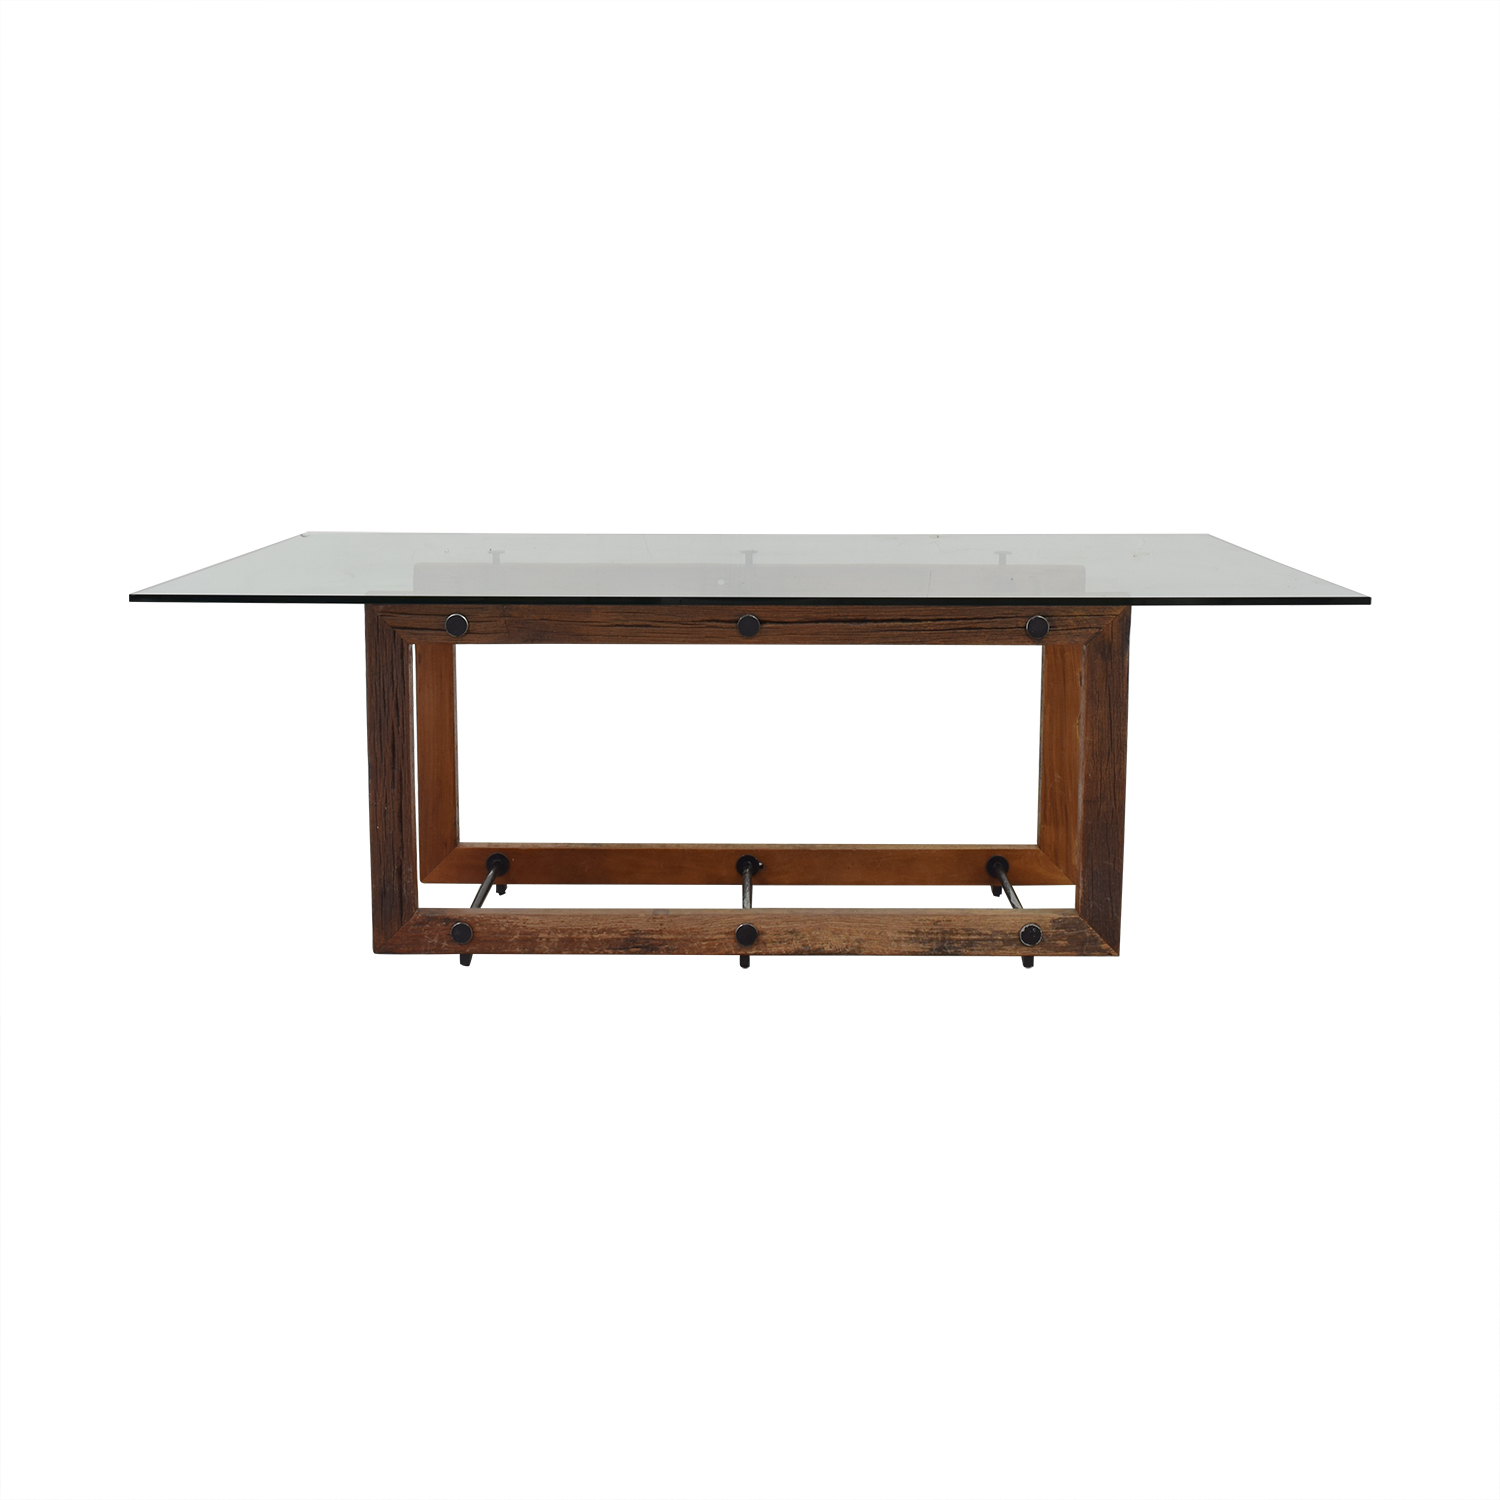 ABC Carpet & Home ABC Carpet & Home Glass Dining Table on sale